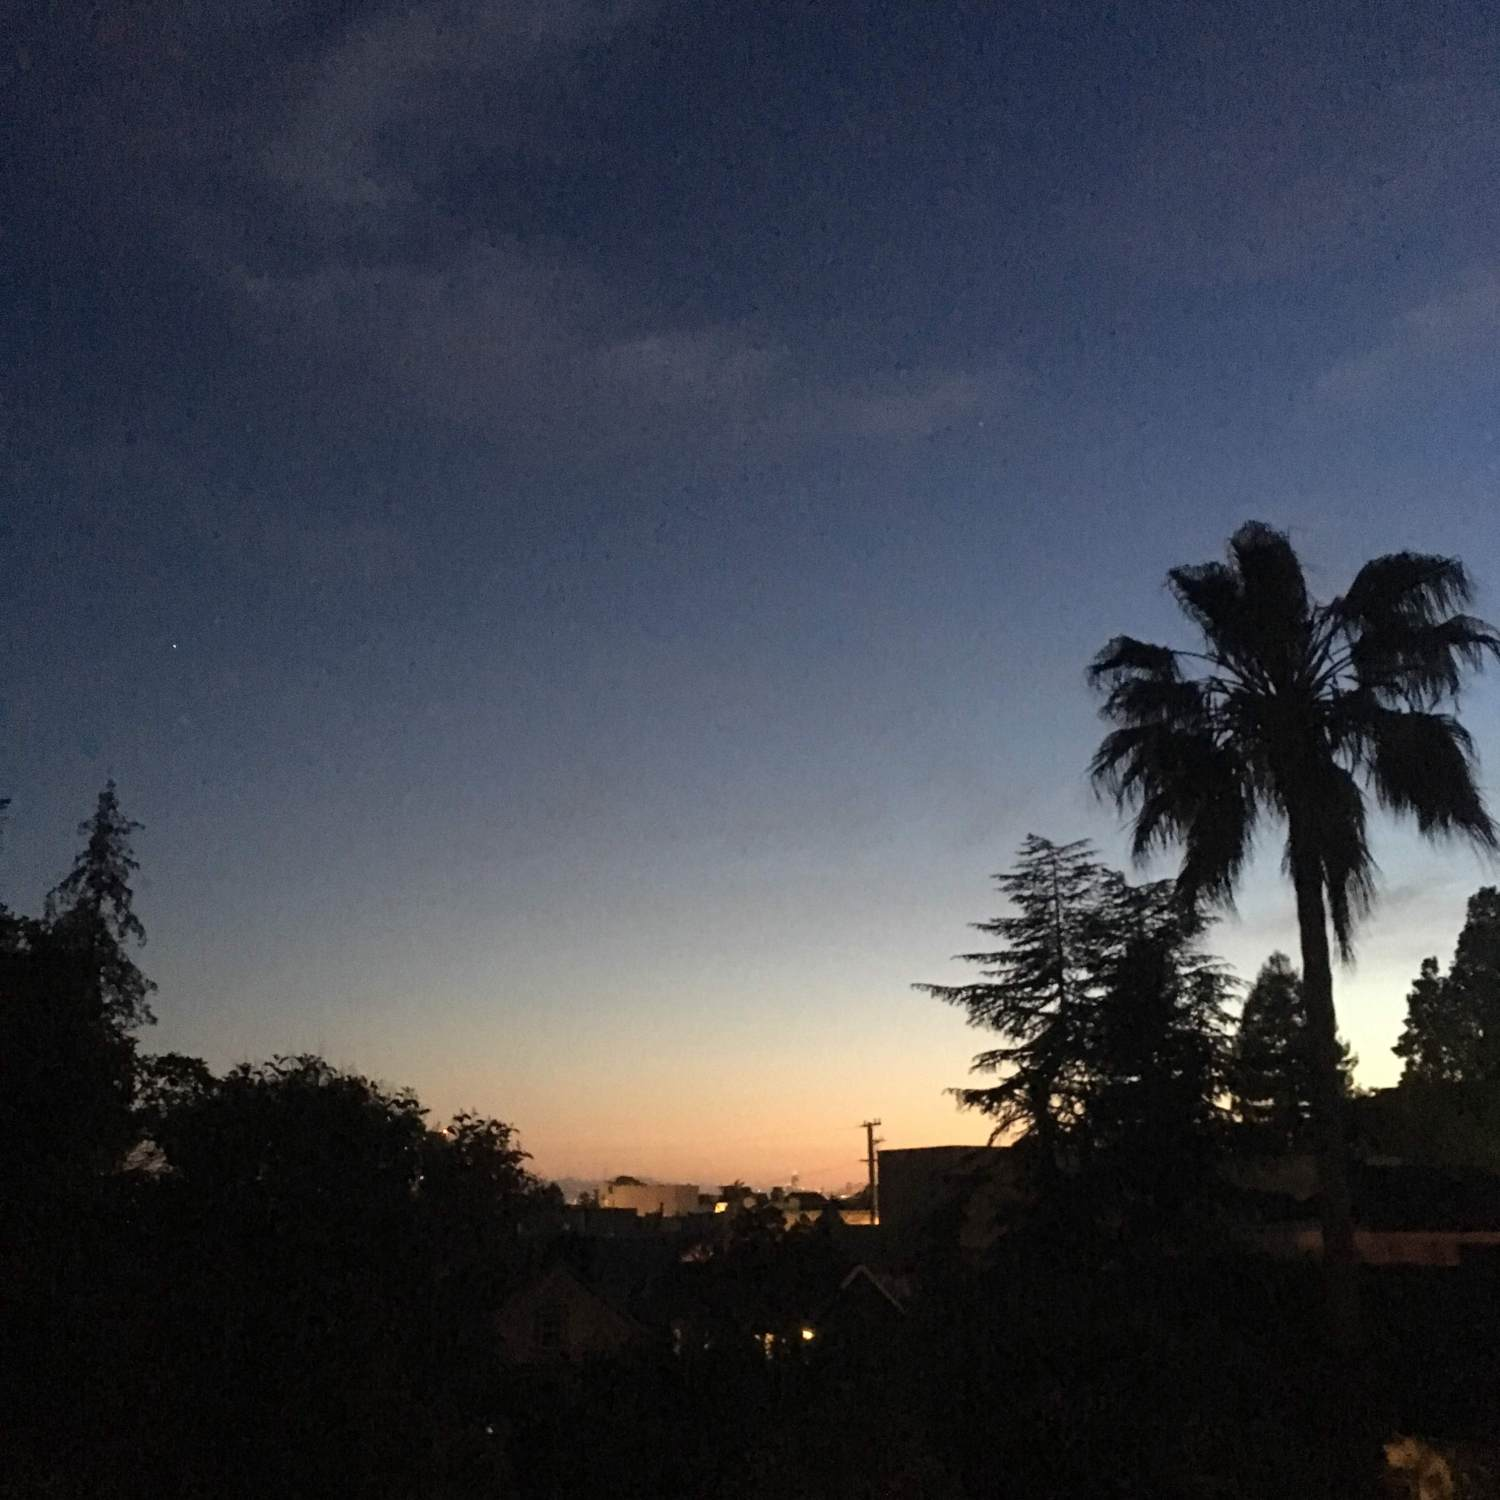 California neighborhood view, just after sunset